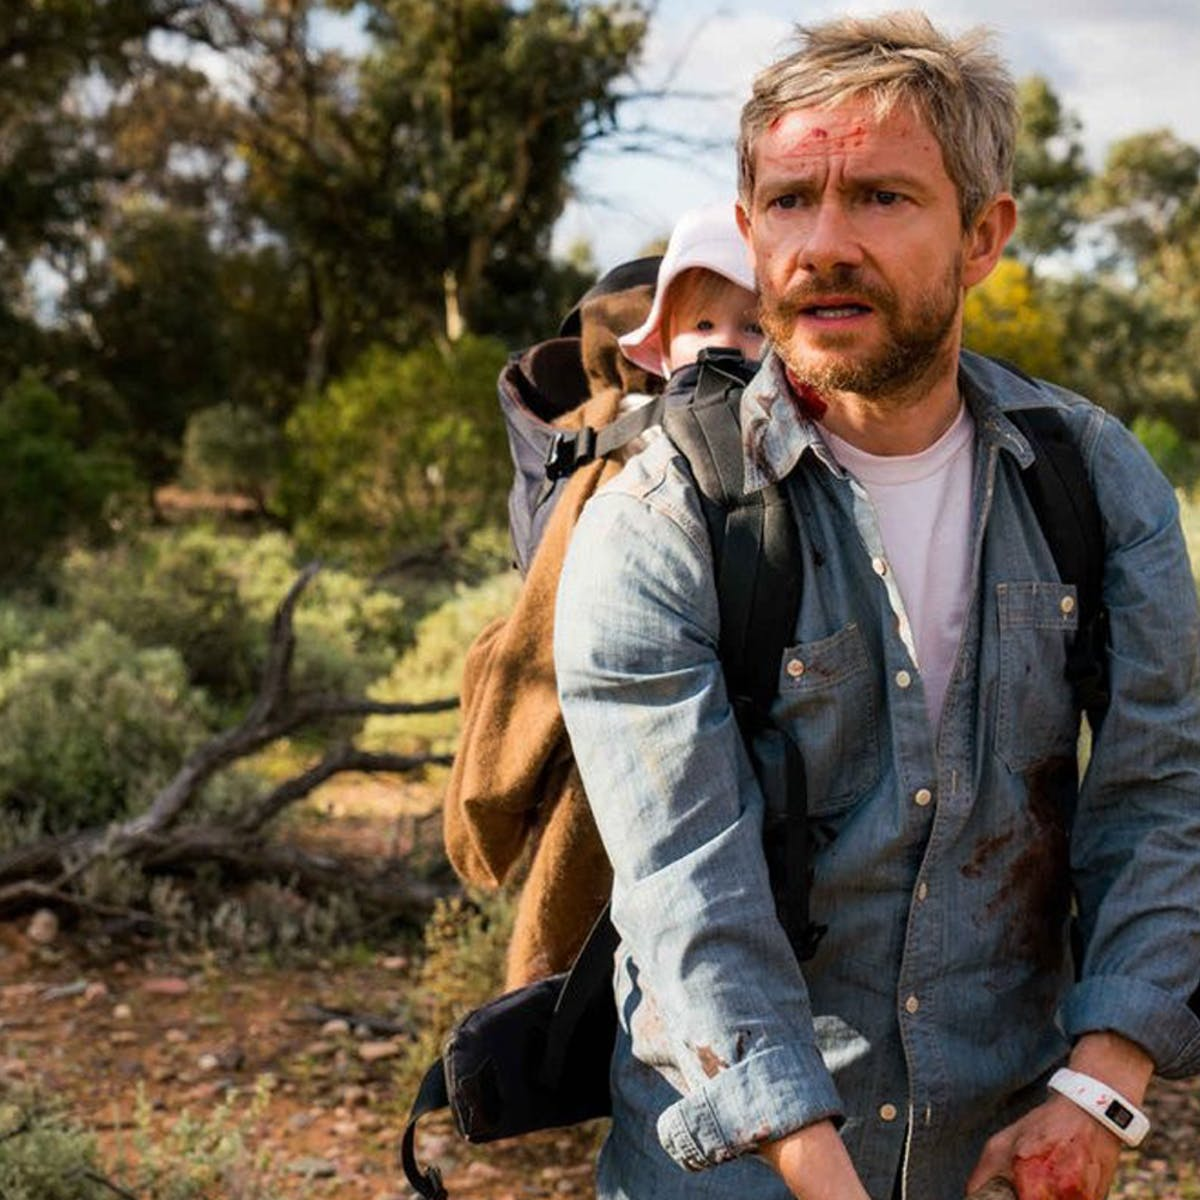 Netflix's 'Cargo' Looks Like an Australian 'Children of Men' With